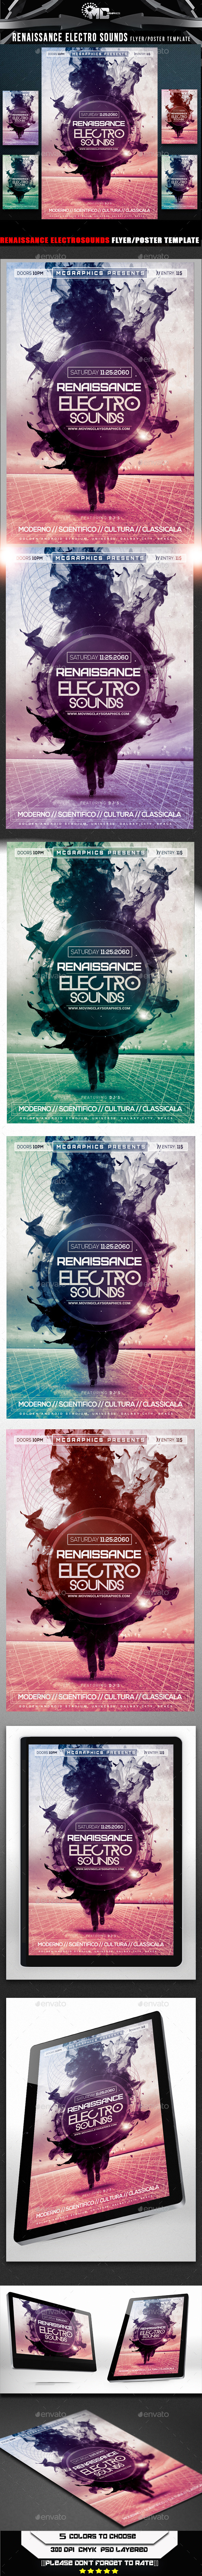 Renaissance Electro Sounds Flyer Template - Flyers Print Templates